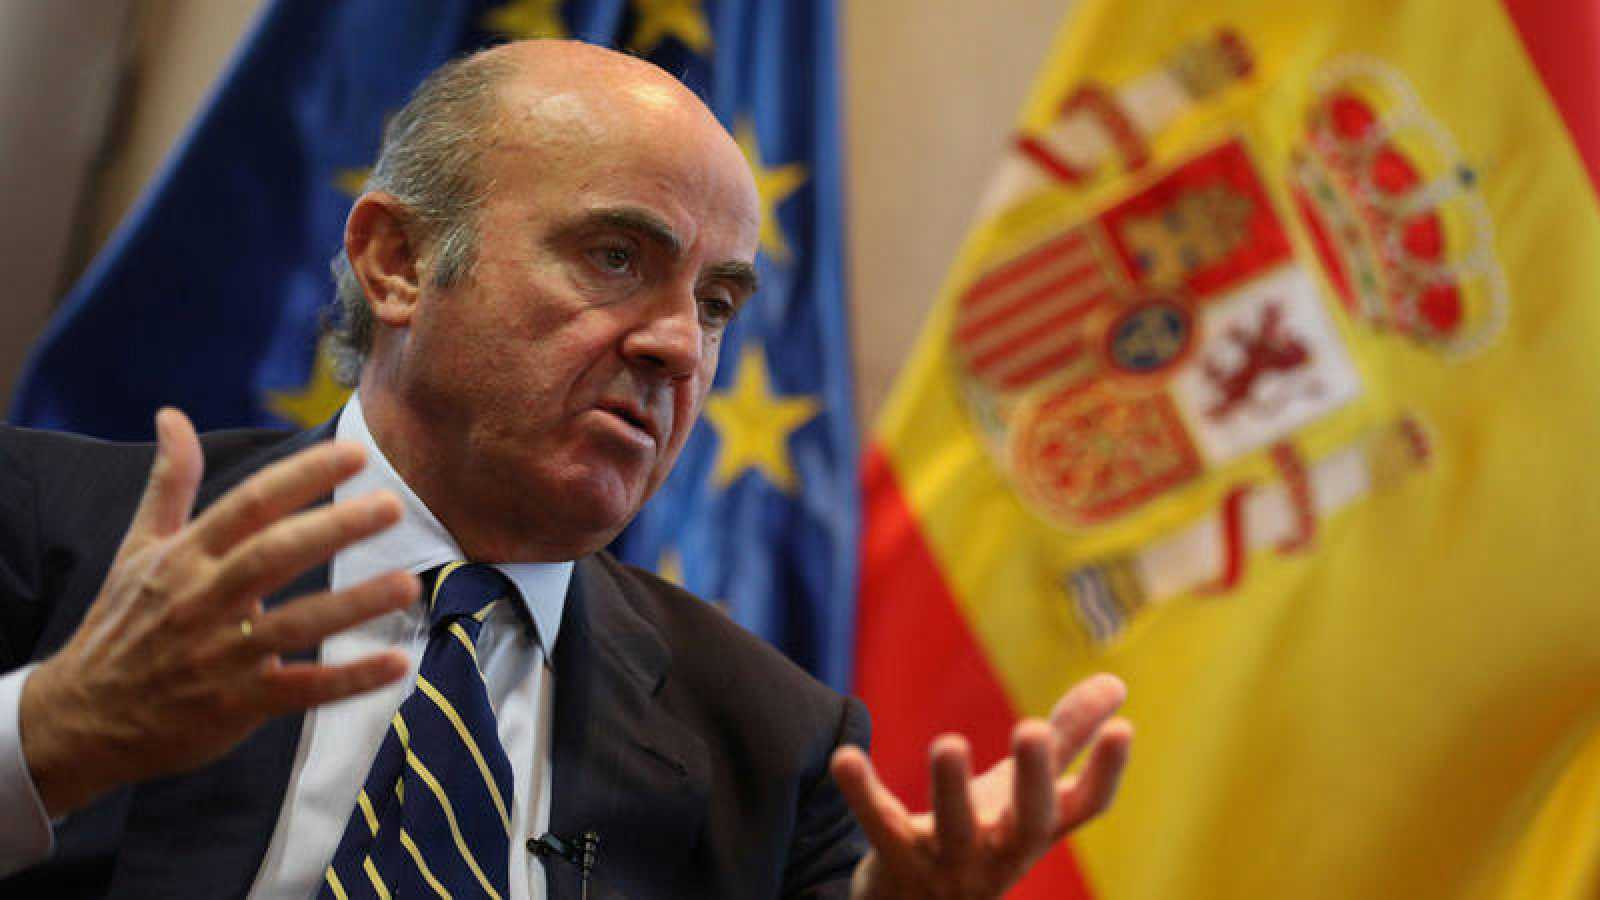 Spain's Economy Minister de Guindos gestures during an interview with Reuters at Economy Ministry in Madrid